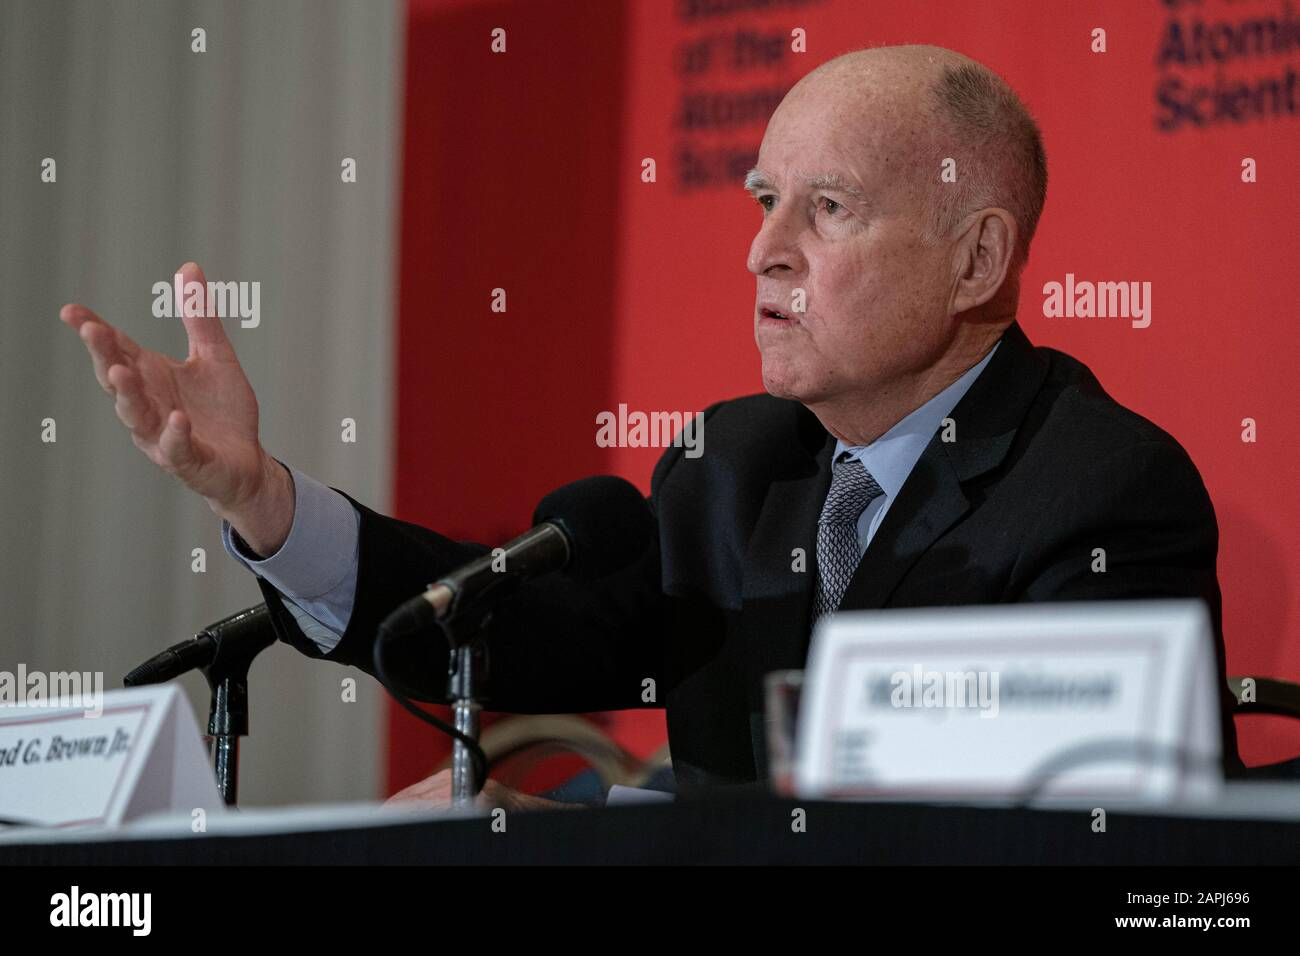 Washington United States 23rd Jan 2020 Executive Chair Bulletin Of The Atomic Scientists Former Governor State Of California Jerry Brown Speaks On A Panel About The Doomsday Clock At The National Press